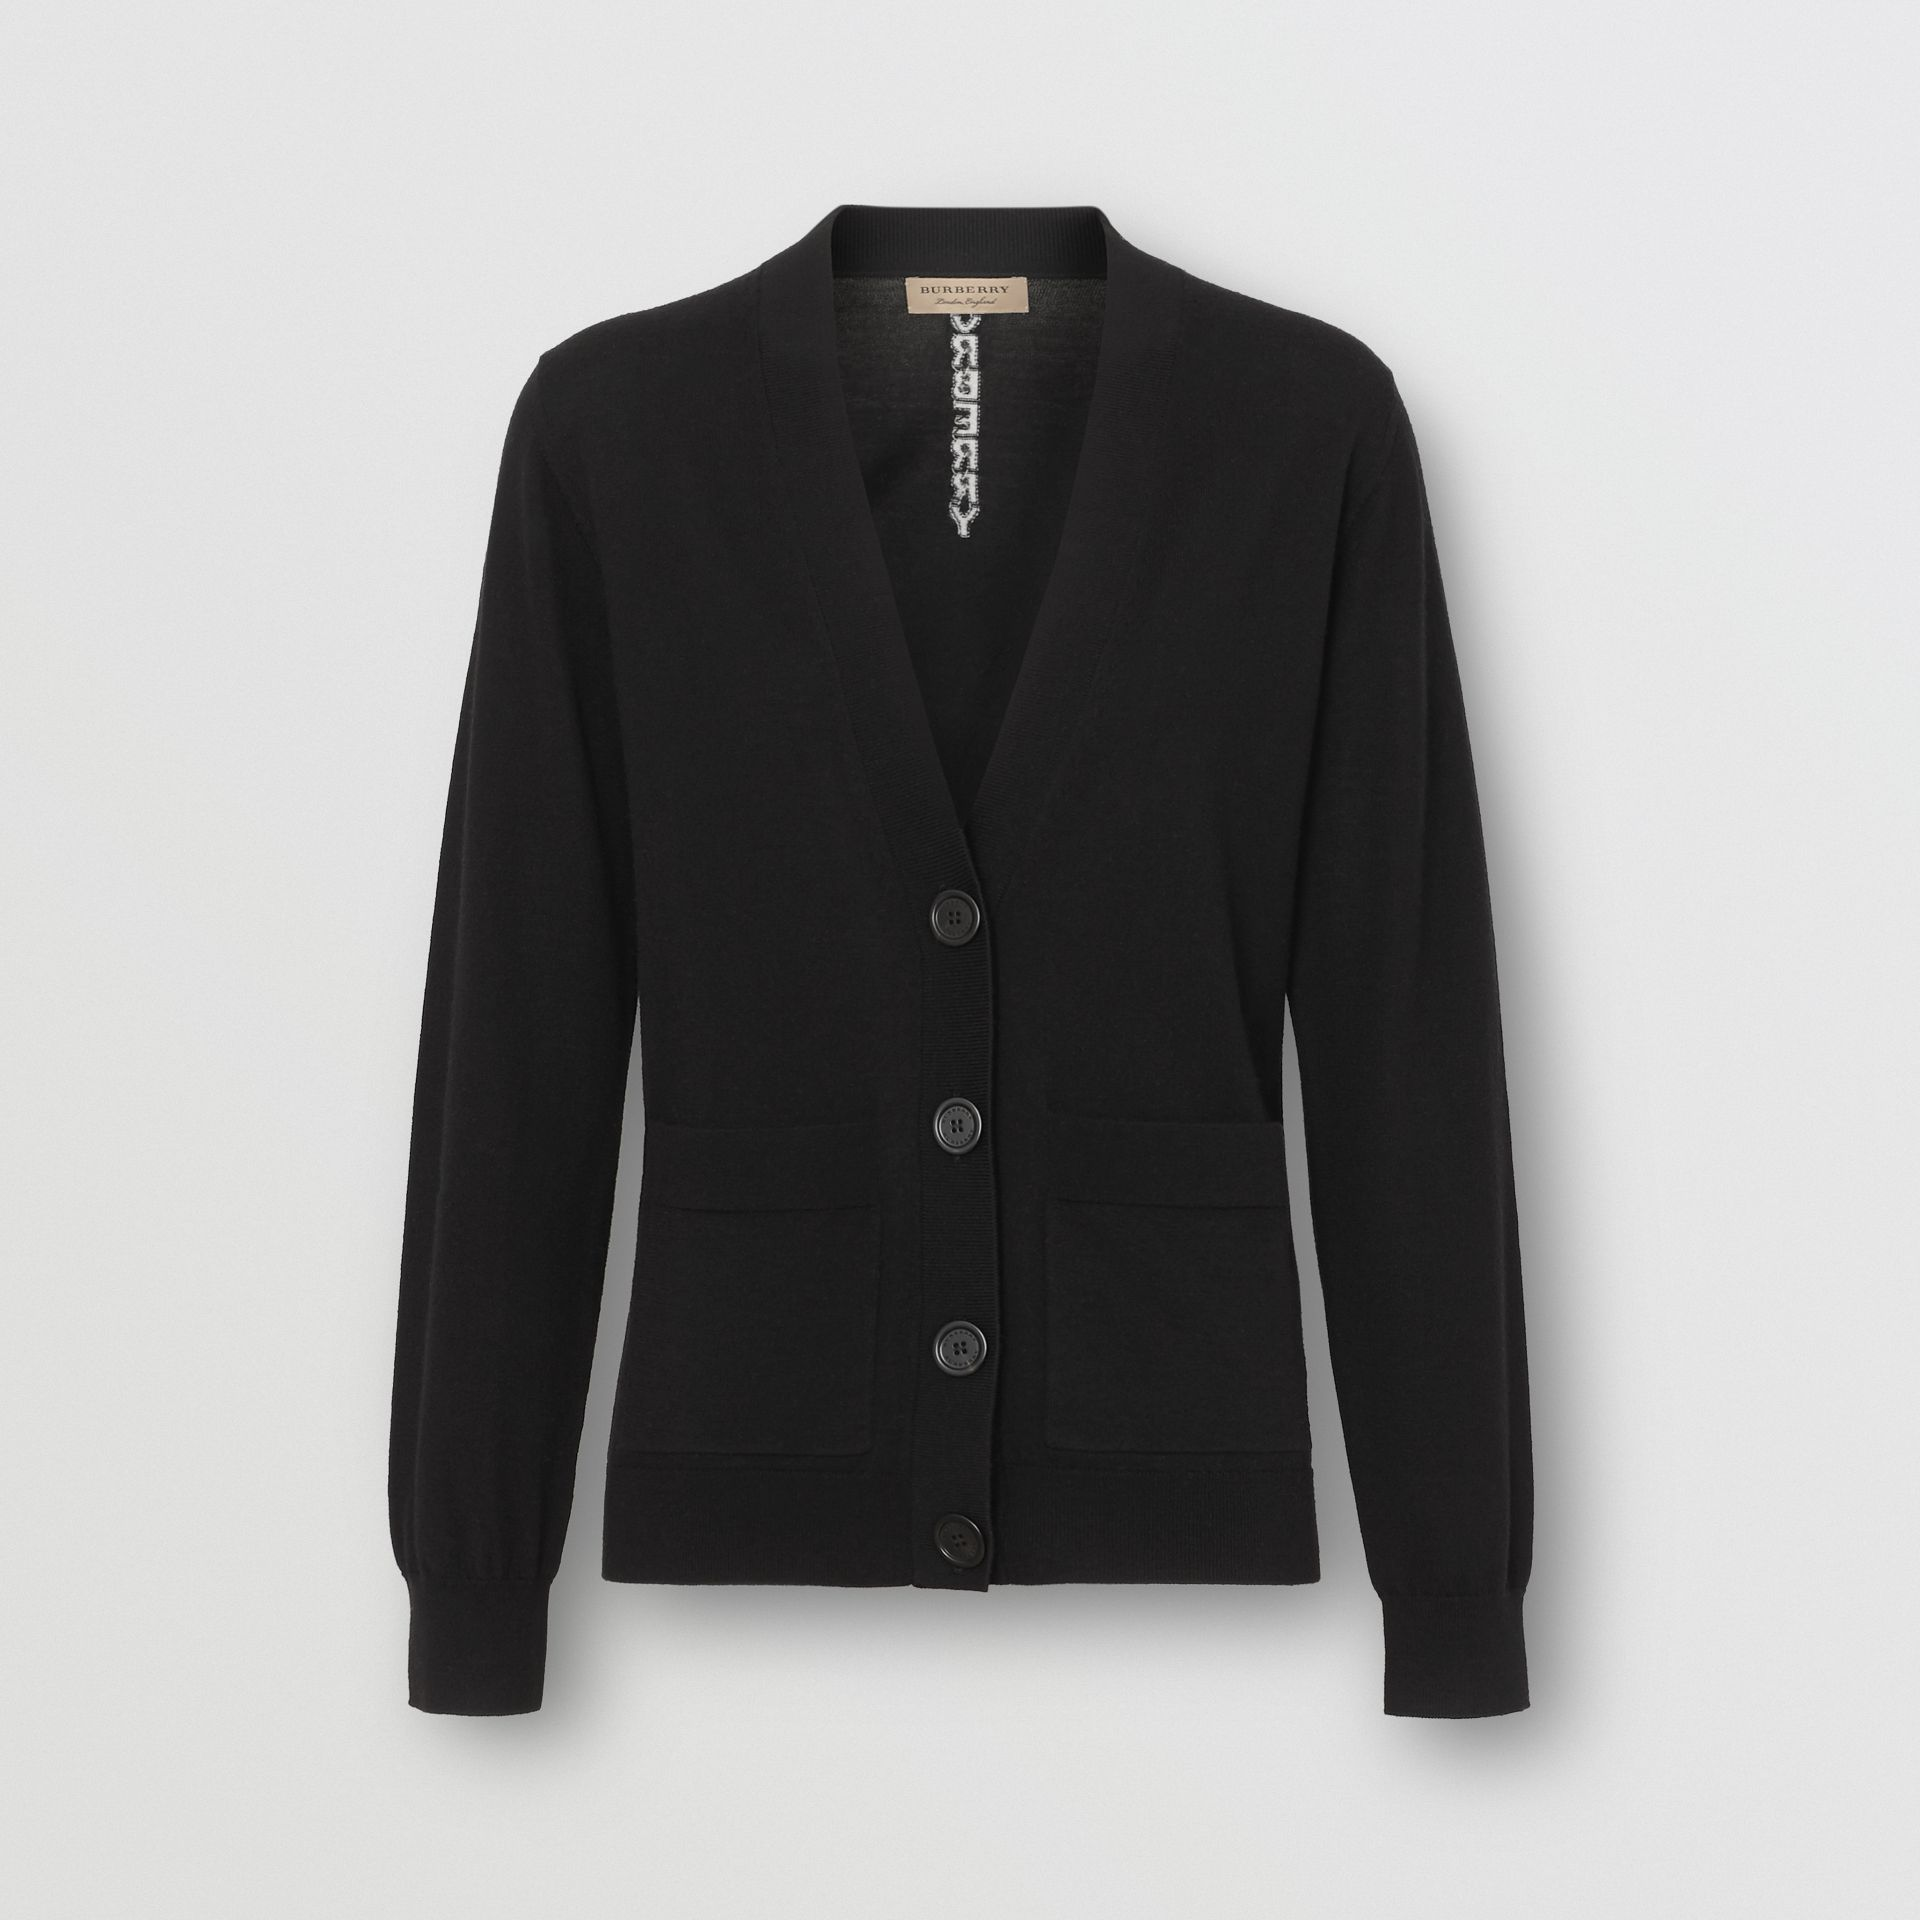 Logo Intarsia Merino Wool Cardigan in Black - Women | Burberry - gallery image 3